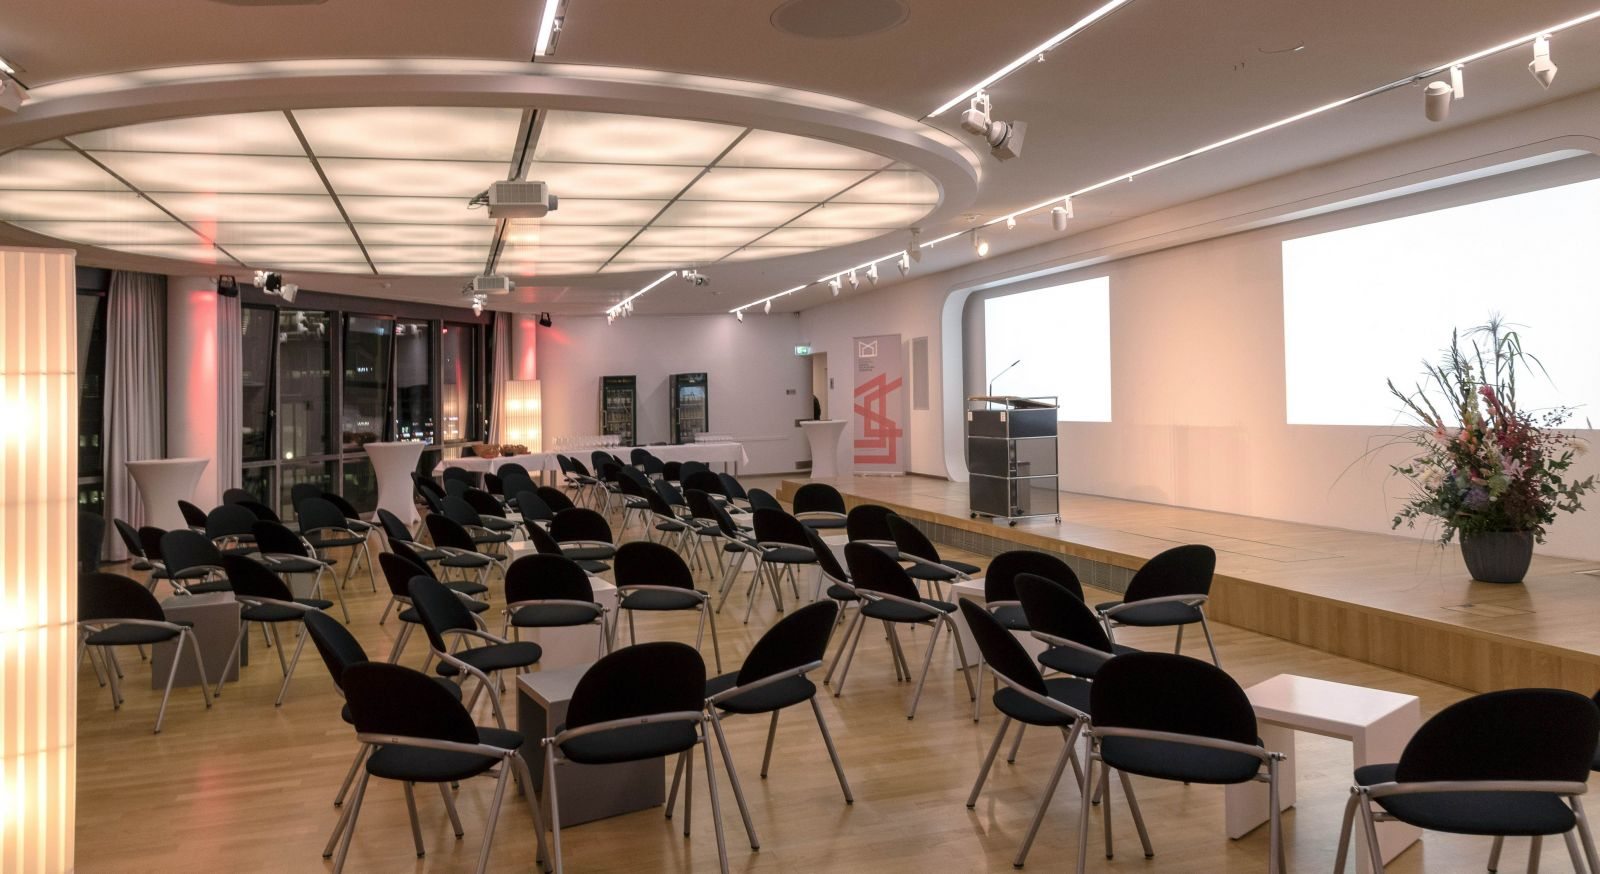 The event room of the Deutsche Kinemathek